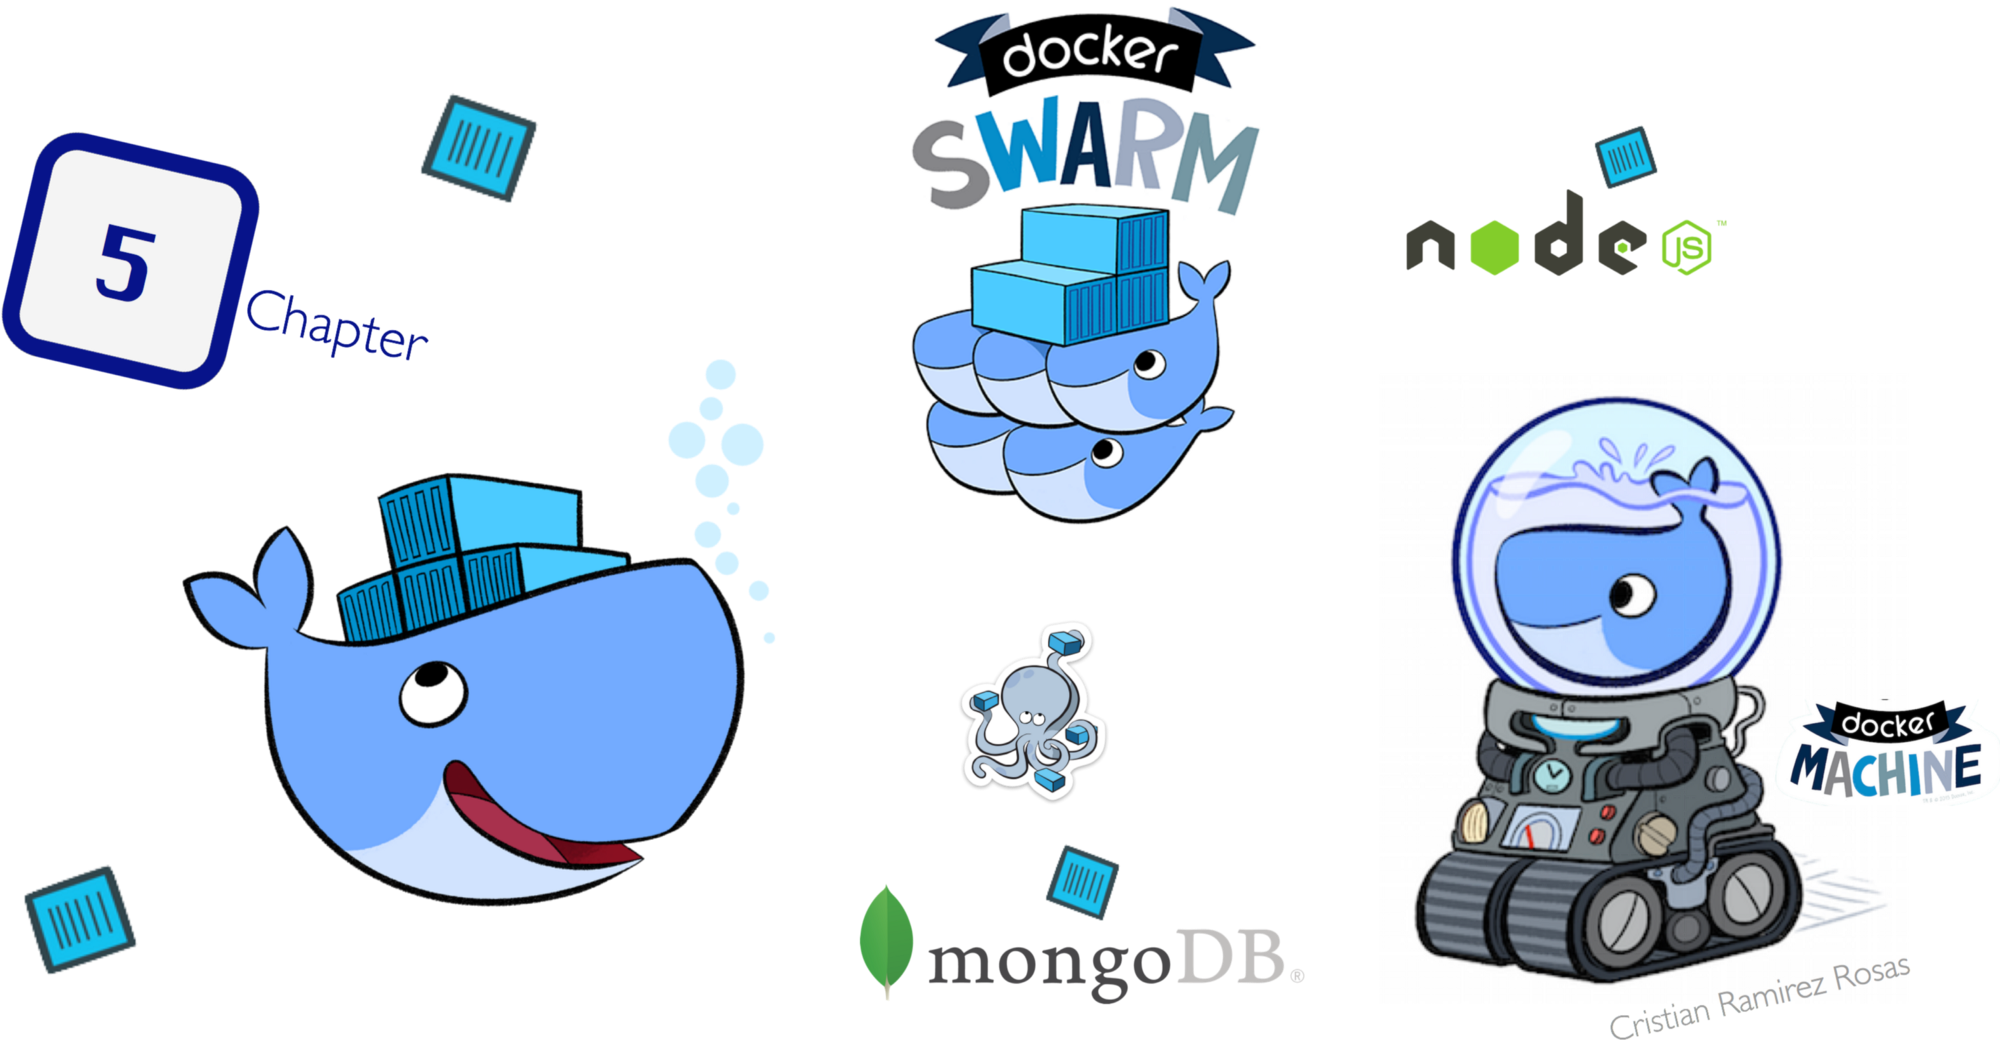 Transparent whale docker. Deploy nodejs microservices to